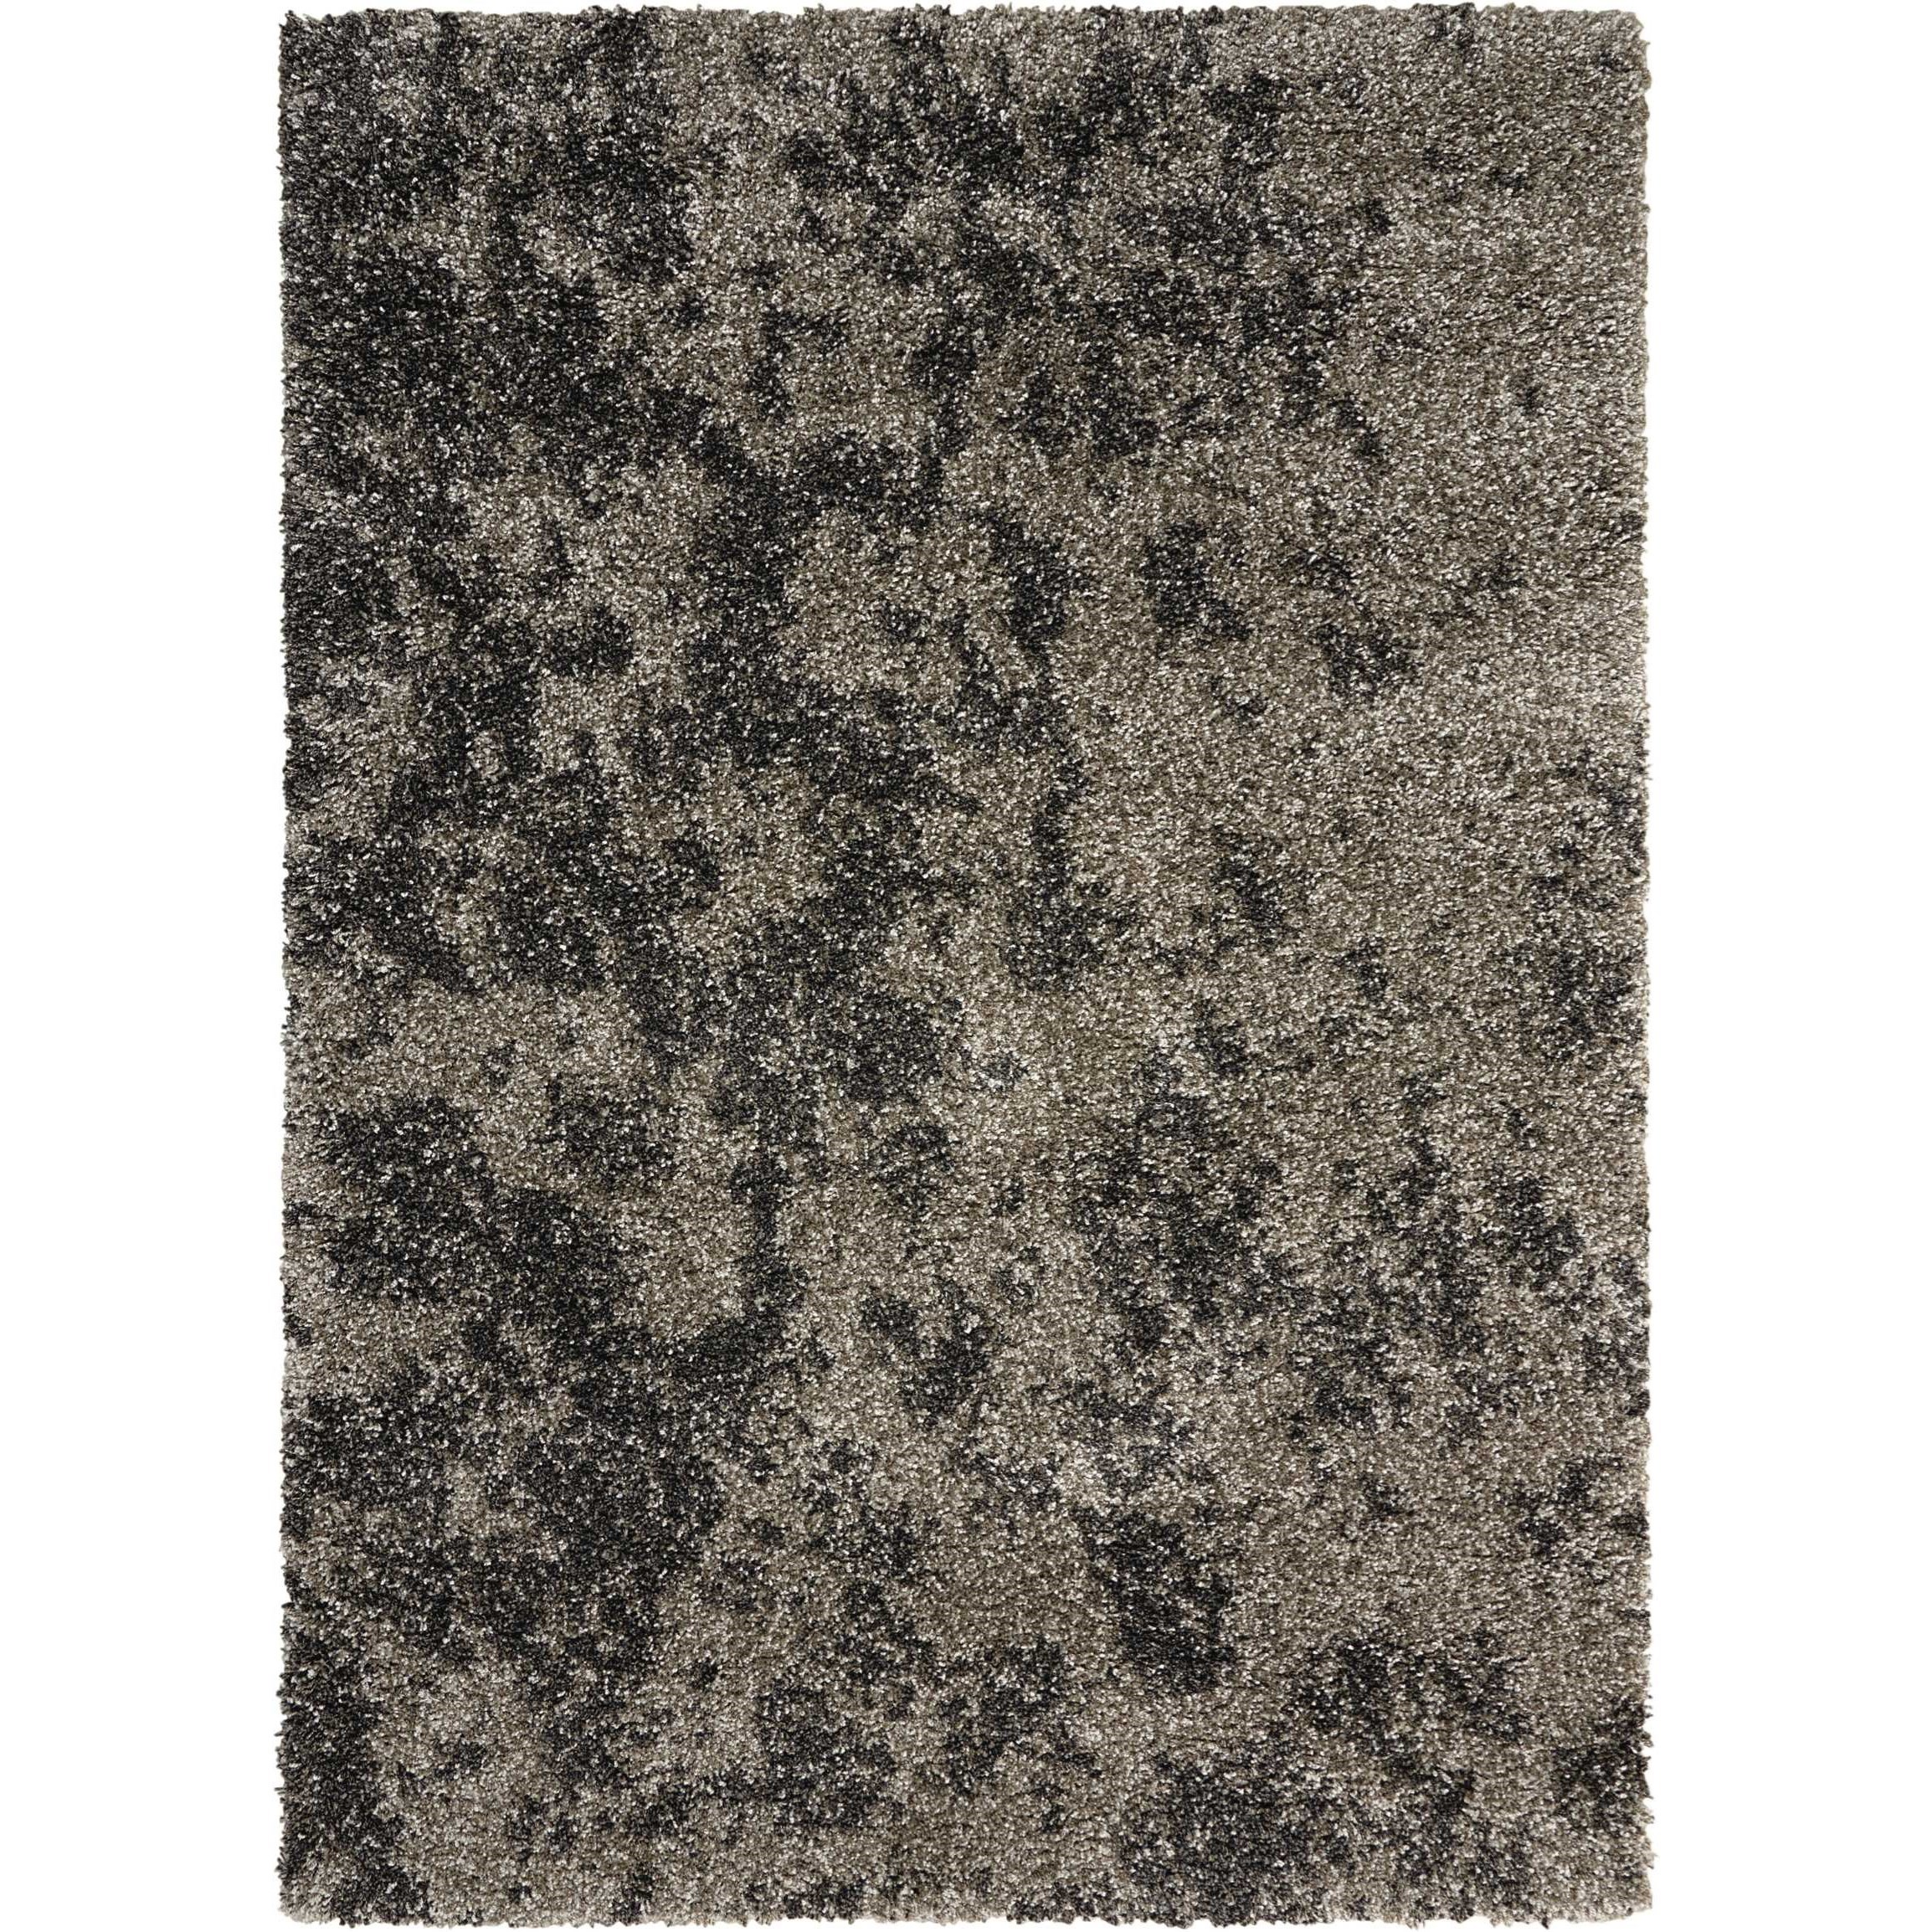 "5'3"" x 7'5"" Granite Rectangle Rug"